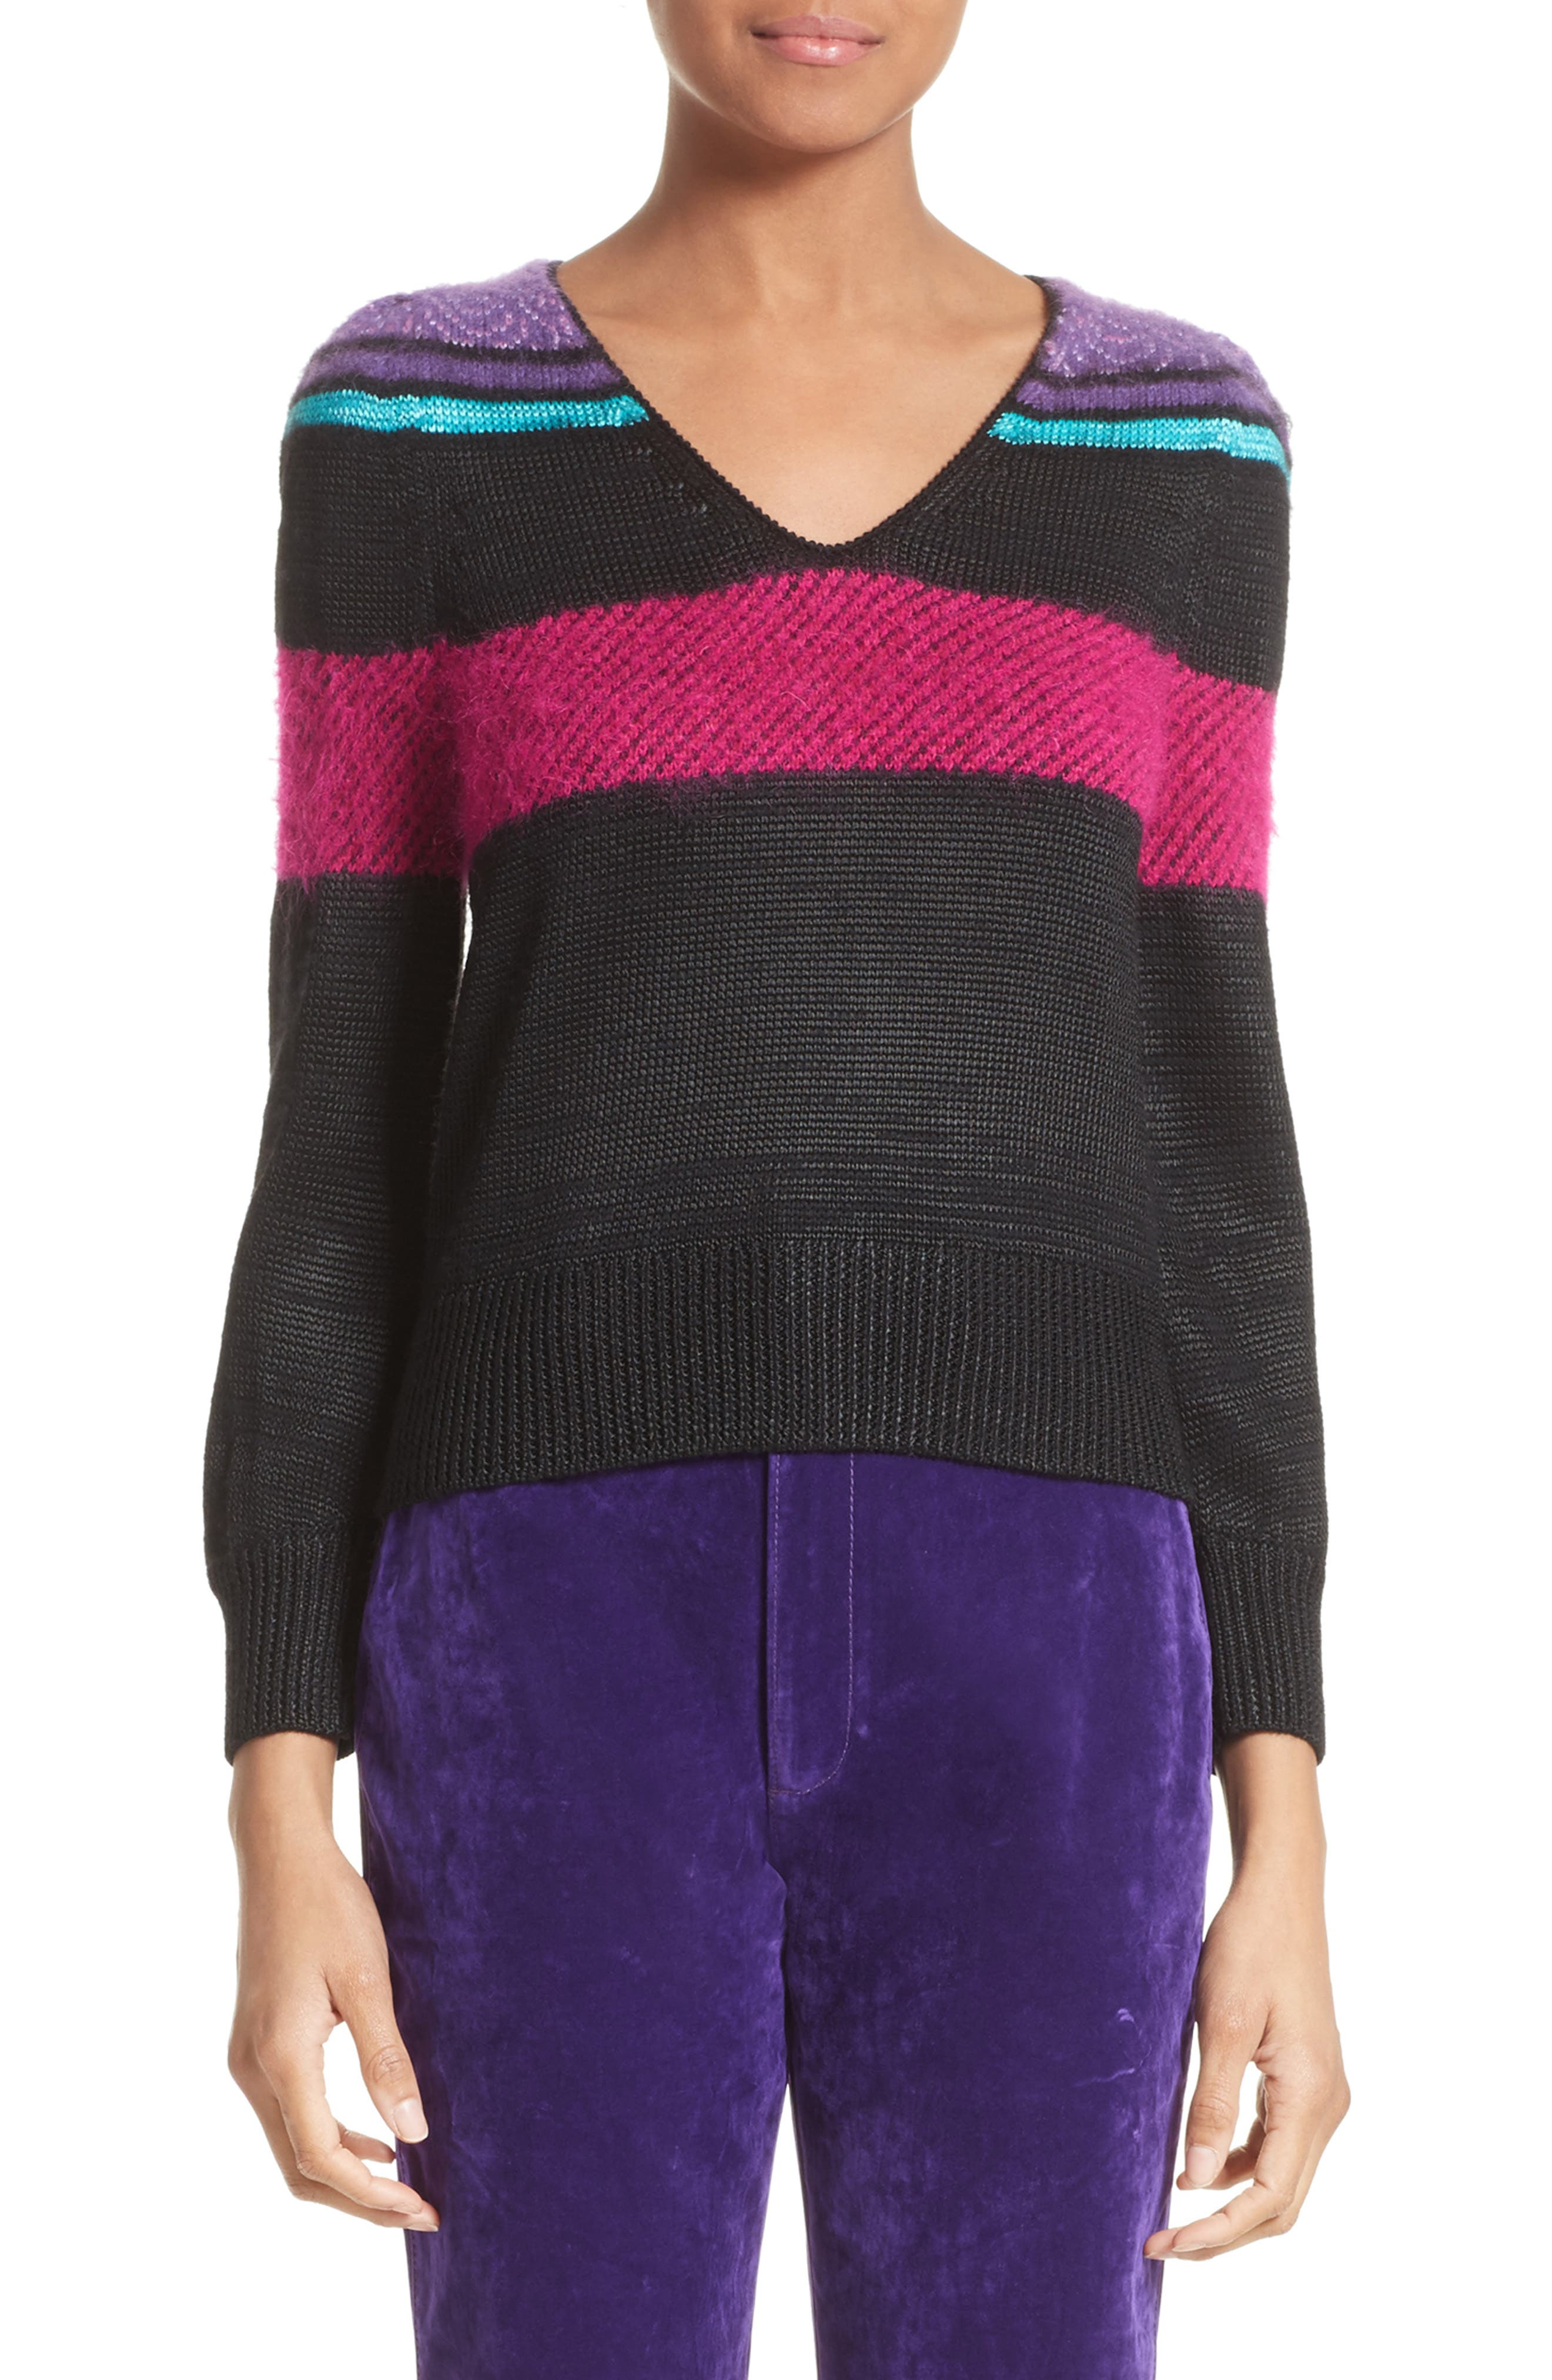 Alternate Image 1 Selected - MARC JACOBS '80s Stripe Knit Wool Sweater